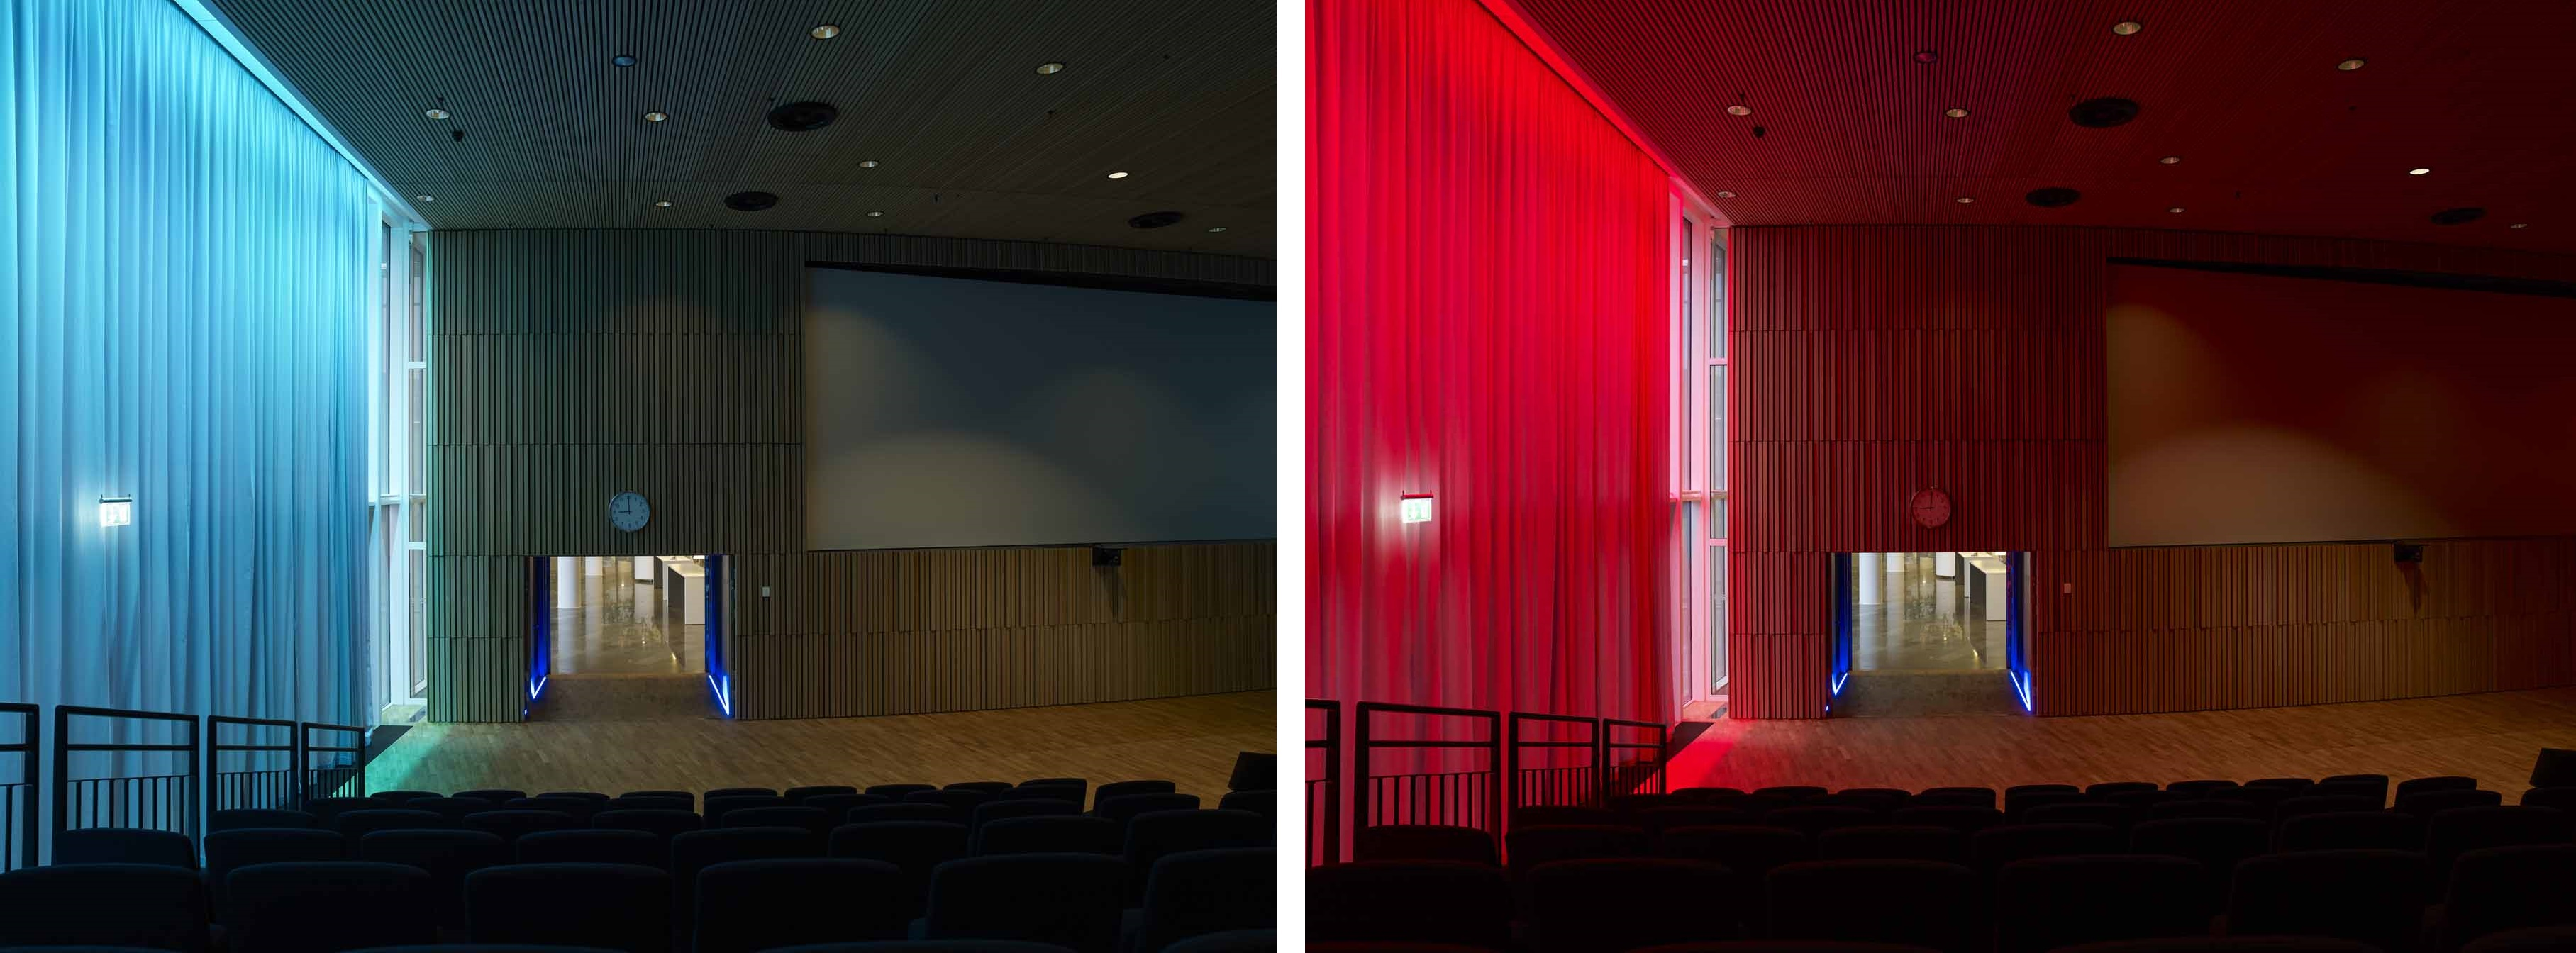 Dans l'auditorium, l'éclairage dynamique est réalisé à l'aide de la gamme LINEARlight Flex avec changement de couleurs. / In the auditorium, dynamic lighting is obtained by colors changes with LINEARlight Flex. / (c) OSRAM